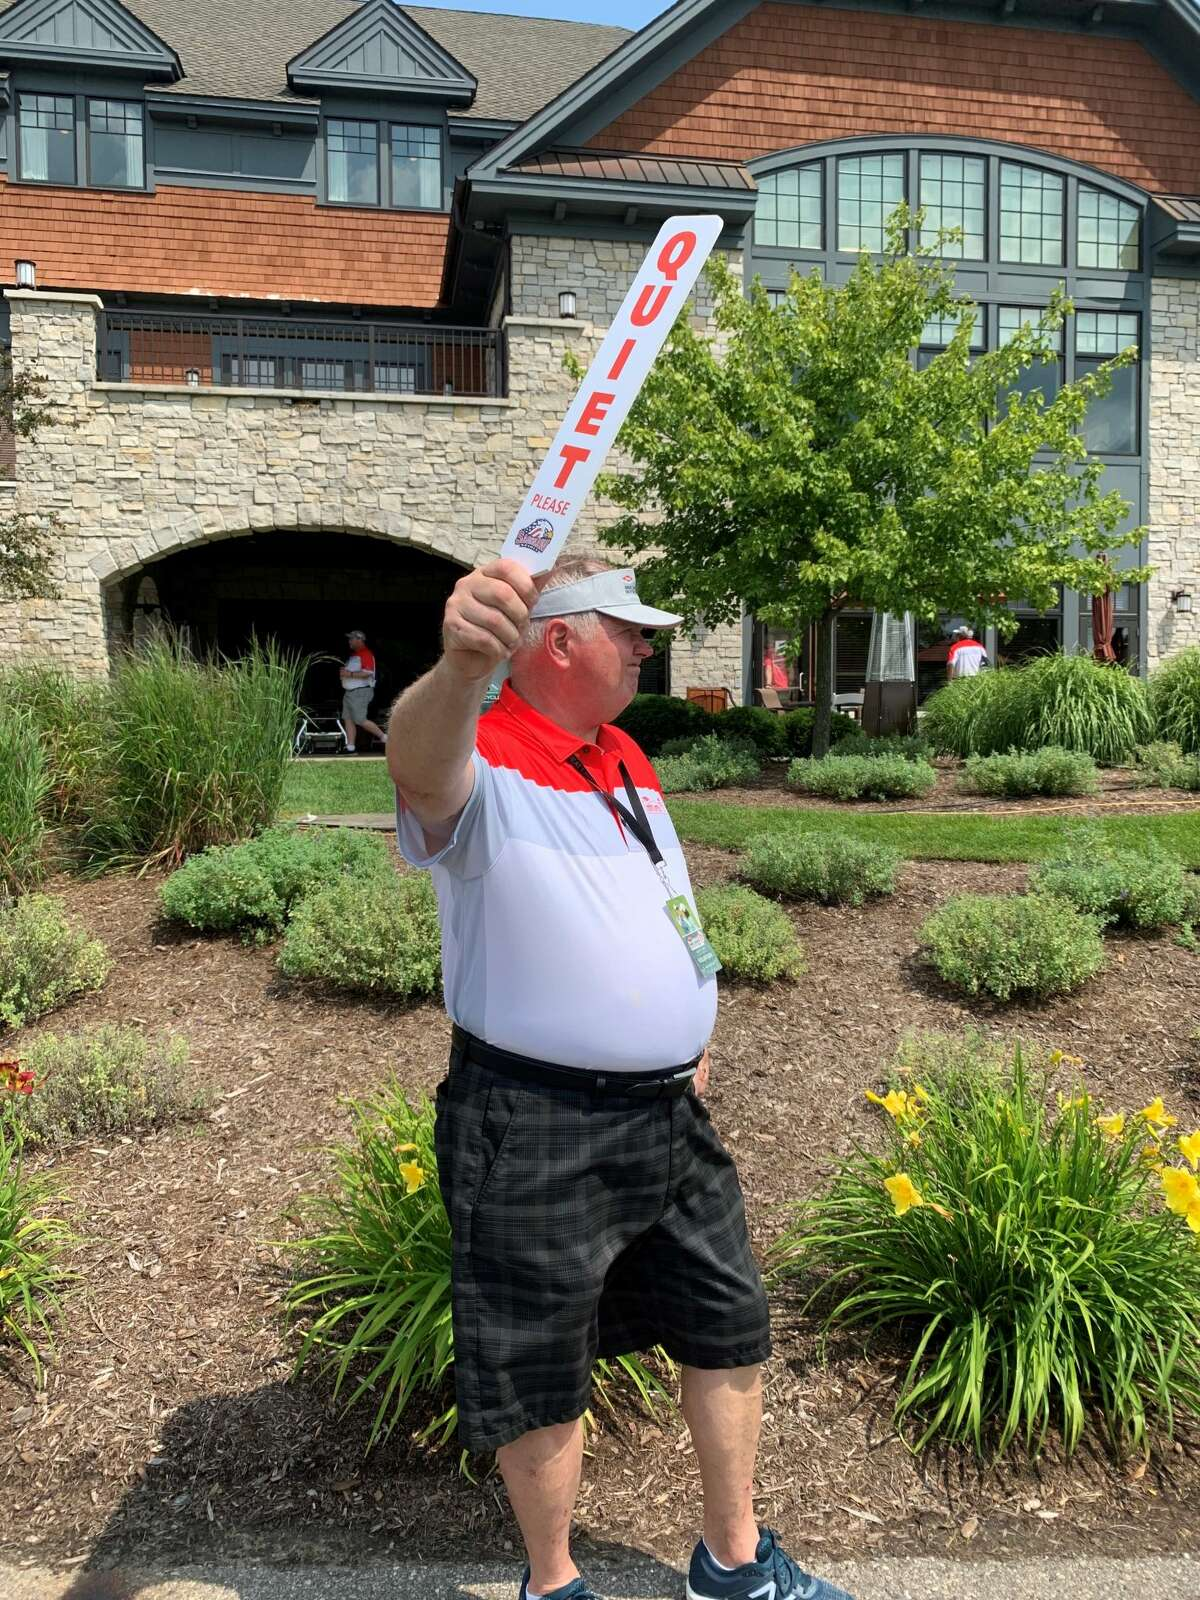 Volunteer Pat Murtha of Tawas City signals for spectators to be quiet as players prepare to tee off on the 18th hole during Wednesday's first round of the Dow Great Lakes Bay Invitational at the Midland Country Club, July 14, 2021.